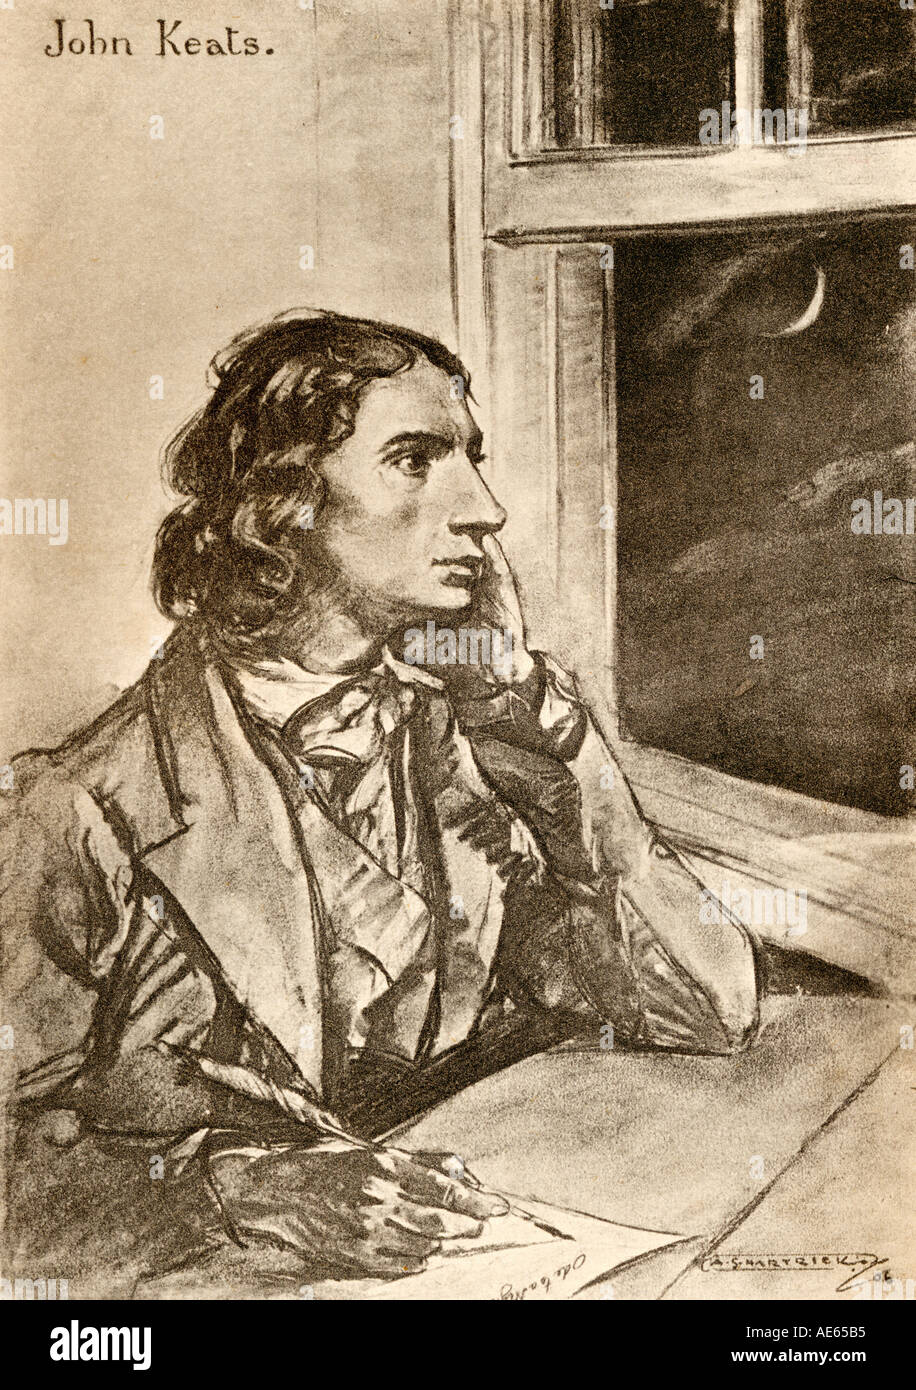 biography of john keats Complete poems and selected letters of john keats  john keats: the making of a poet, a biography  john keats, poets biography, keats poetry, poetry keats, john.